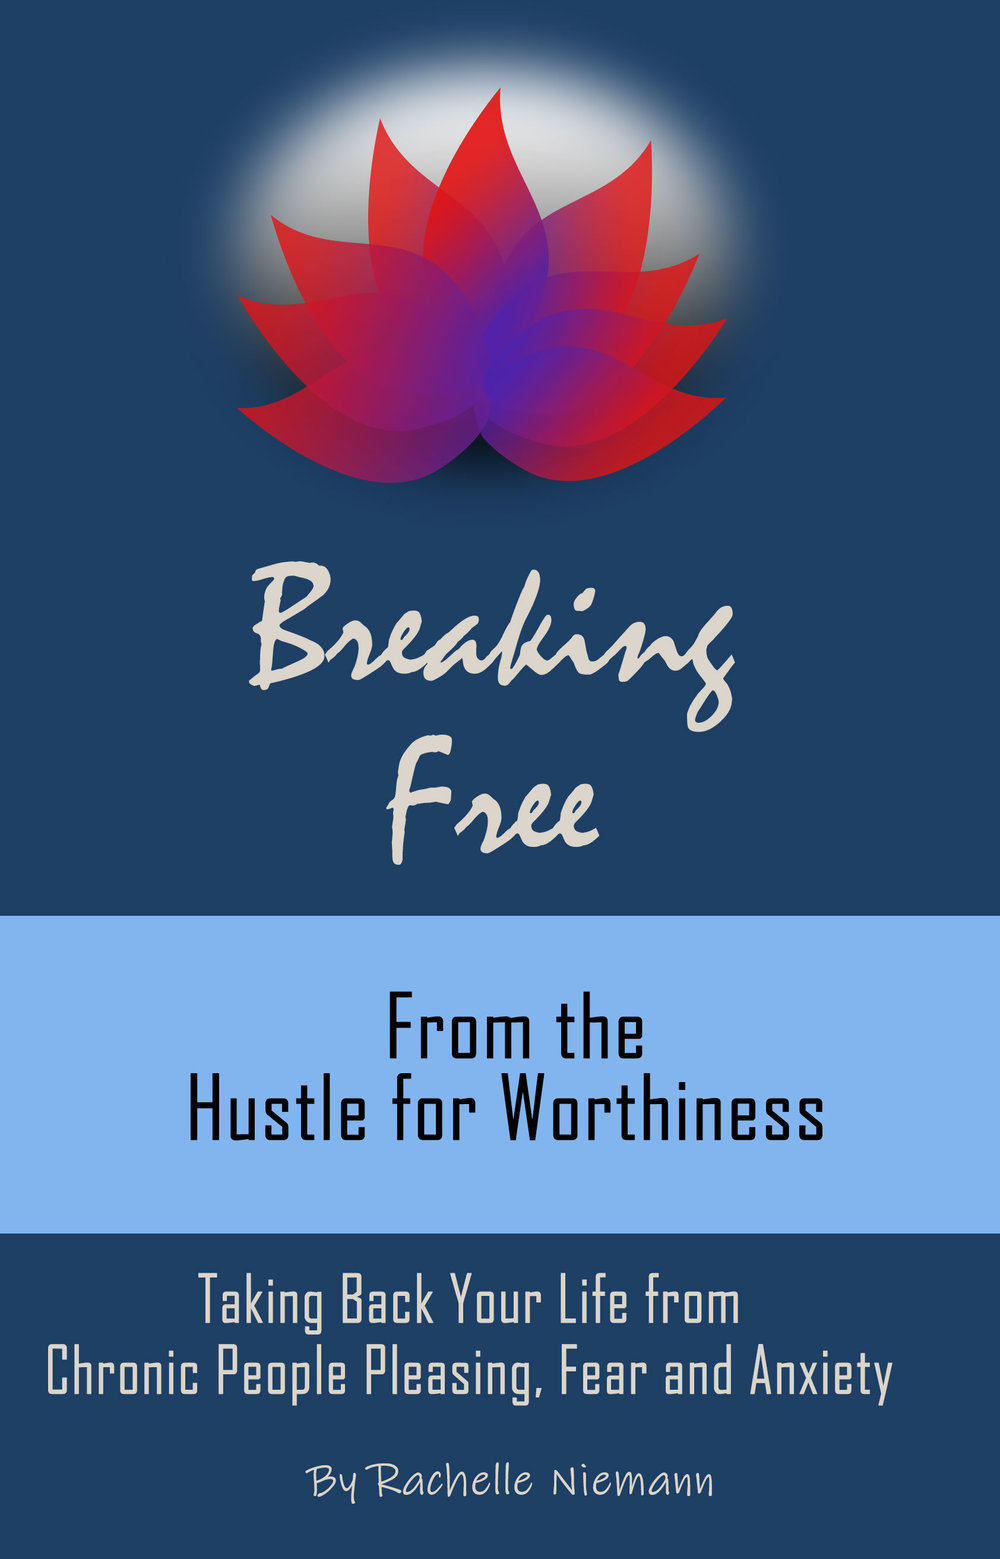 Breaking Free From the Hustle For Worthiness - An inspiring and effective resource for enhancing our mental wellness and replacing habits that create growth using curiosity, courage and compassion. This book helps us understand that there are not quick plans for healing, but continuous modification of behaviors and reflection that will lead us to owning our own sense of worthiness and inspires us to make the transition from fear to self-love.